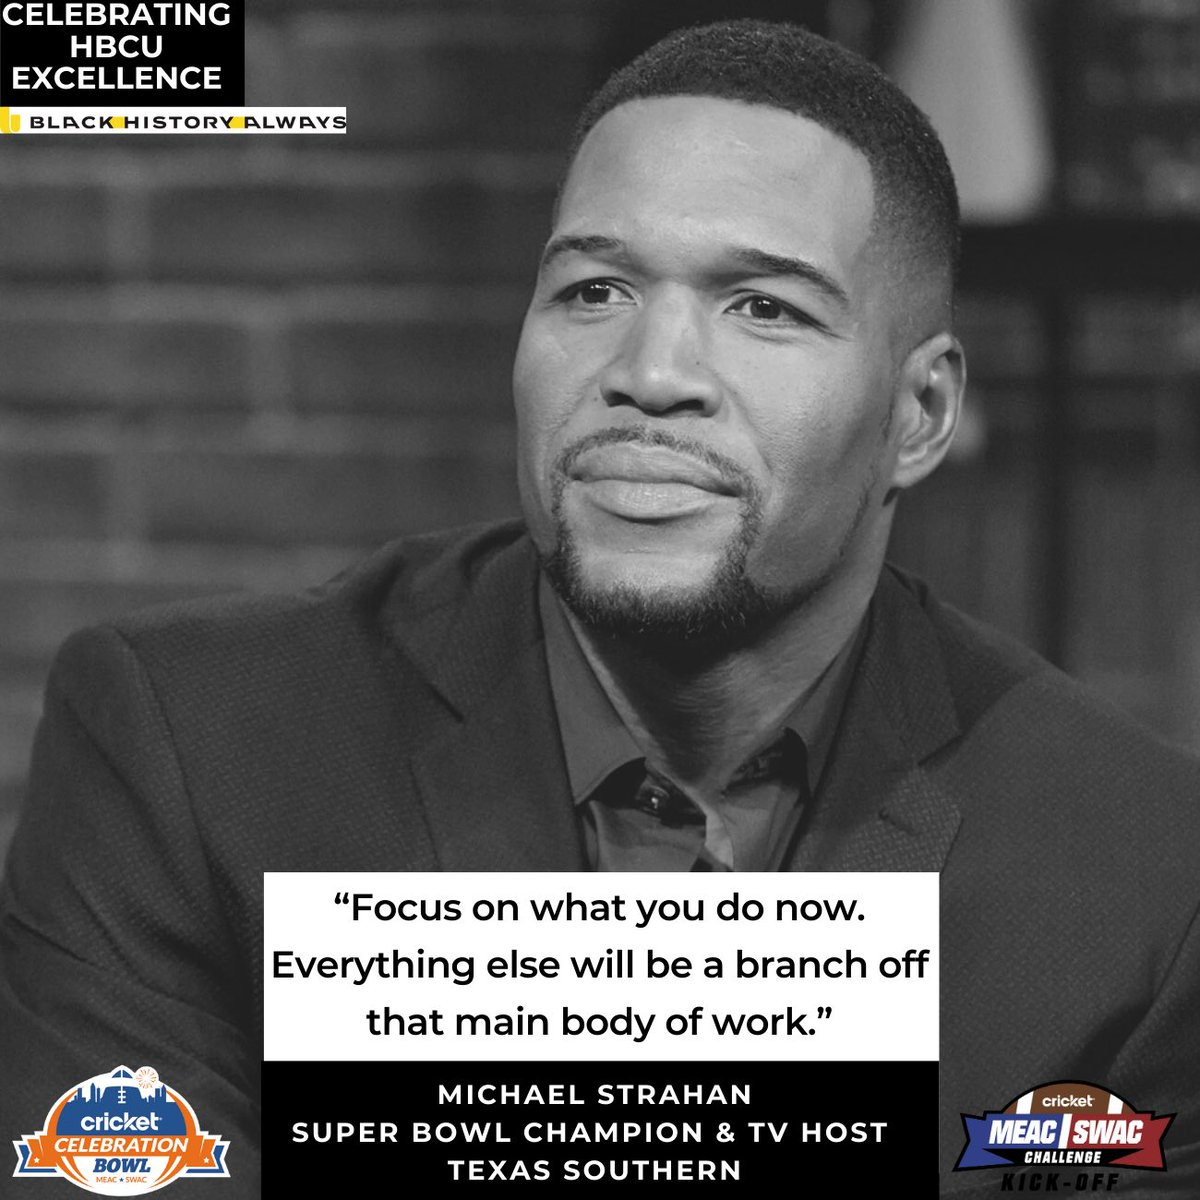 Michael Strahan attended Texas Southern University where he holds the sack record (41.5). He went on to become a now Super bowl Champion, TV Personality, and journalist. #CelebratingHbcuExcellence #BlackHistoryAlways